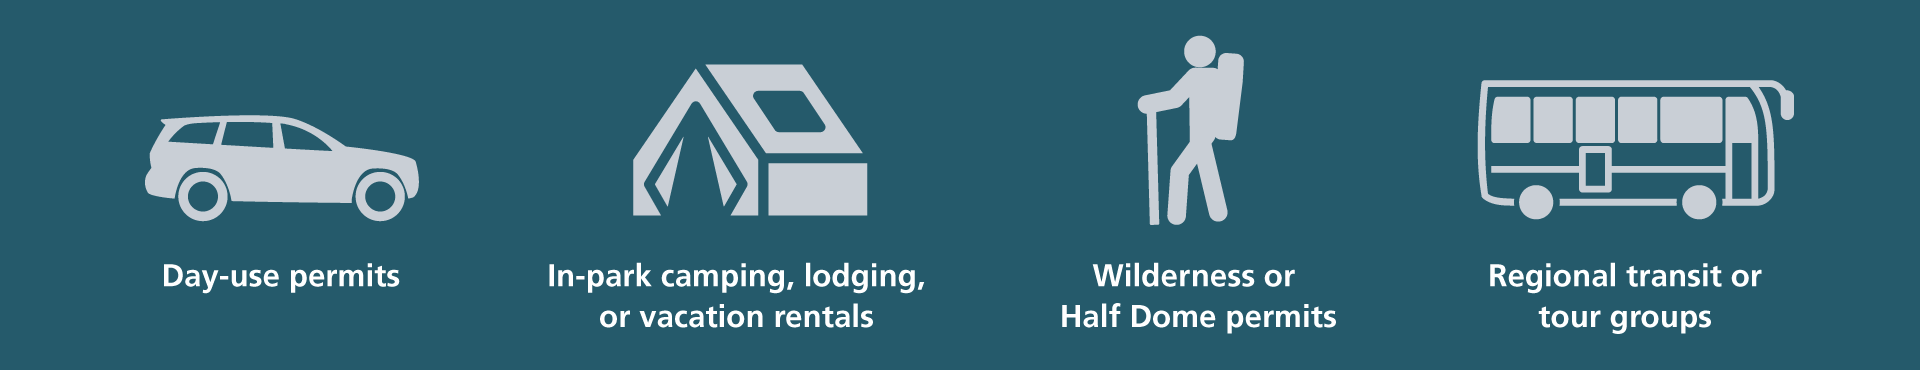 Four icons for the four permit types